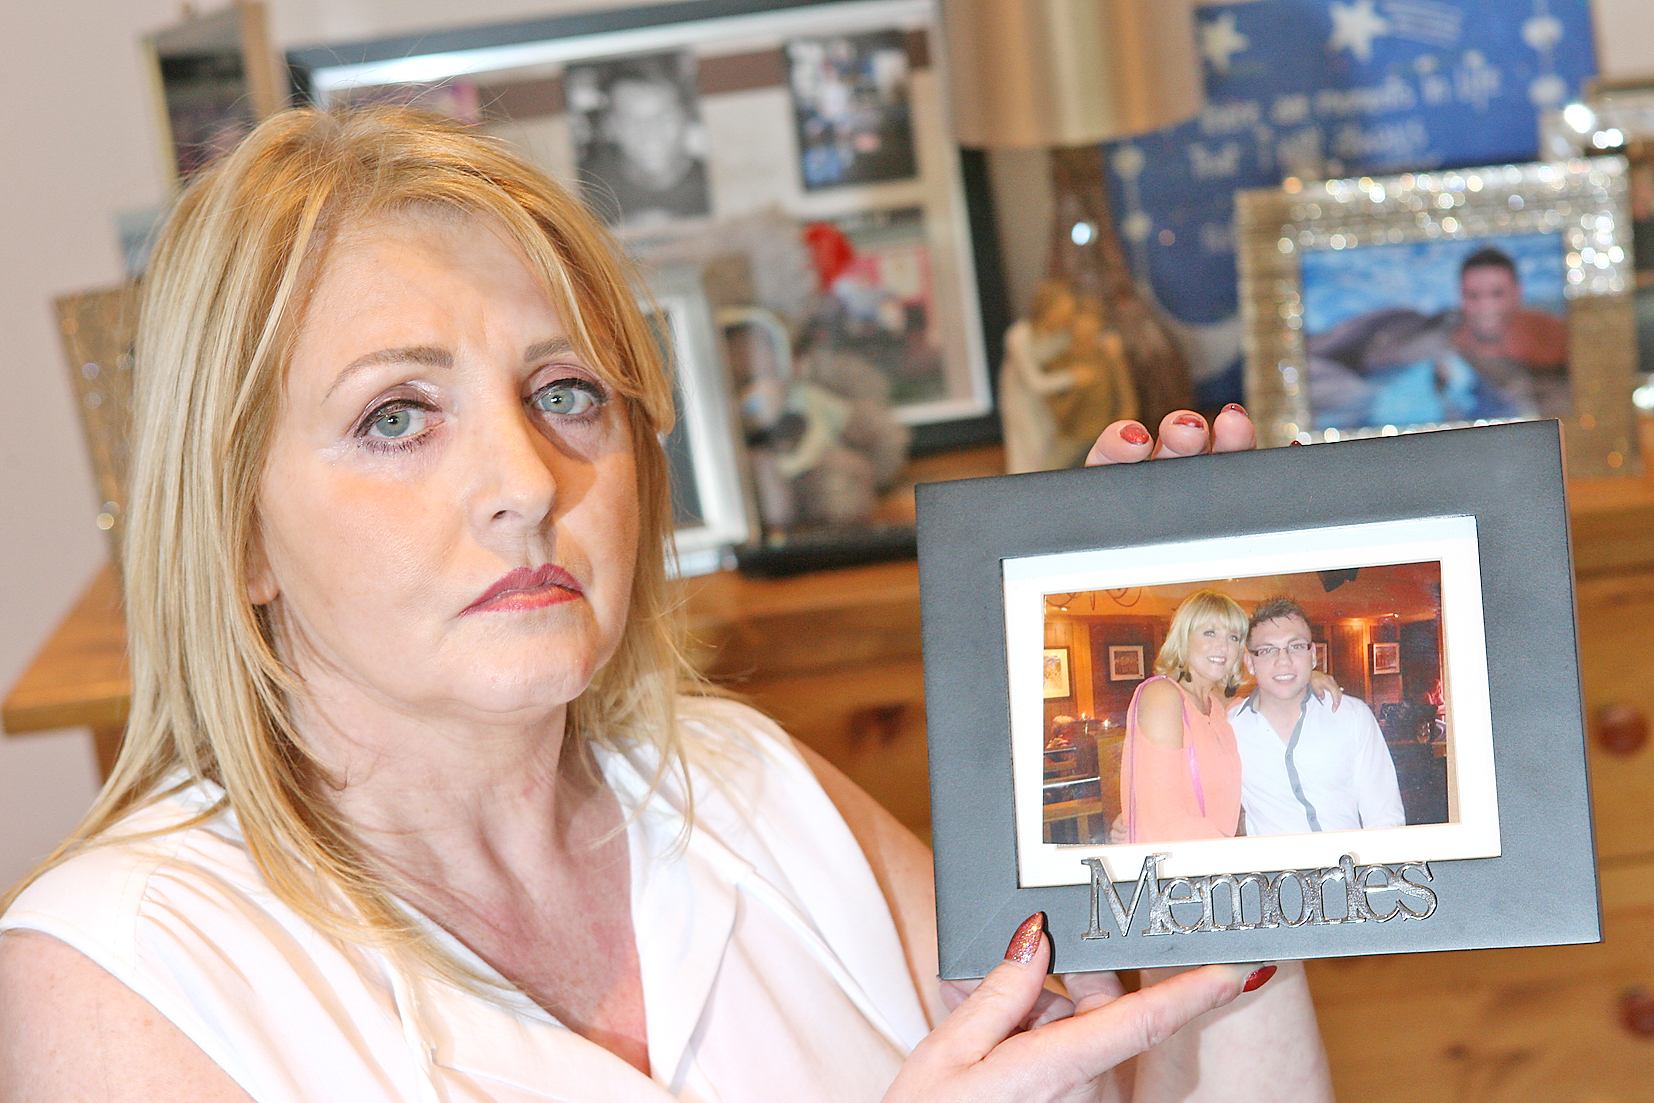 Mary Magee holds a photograph of herself and her son Eamonn